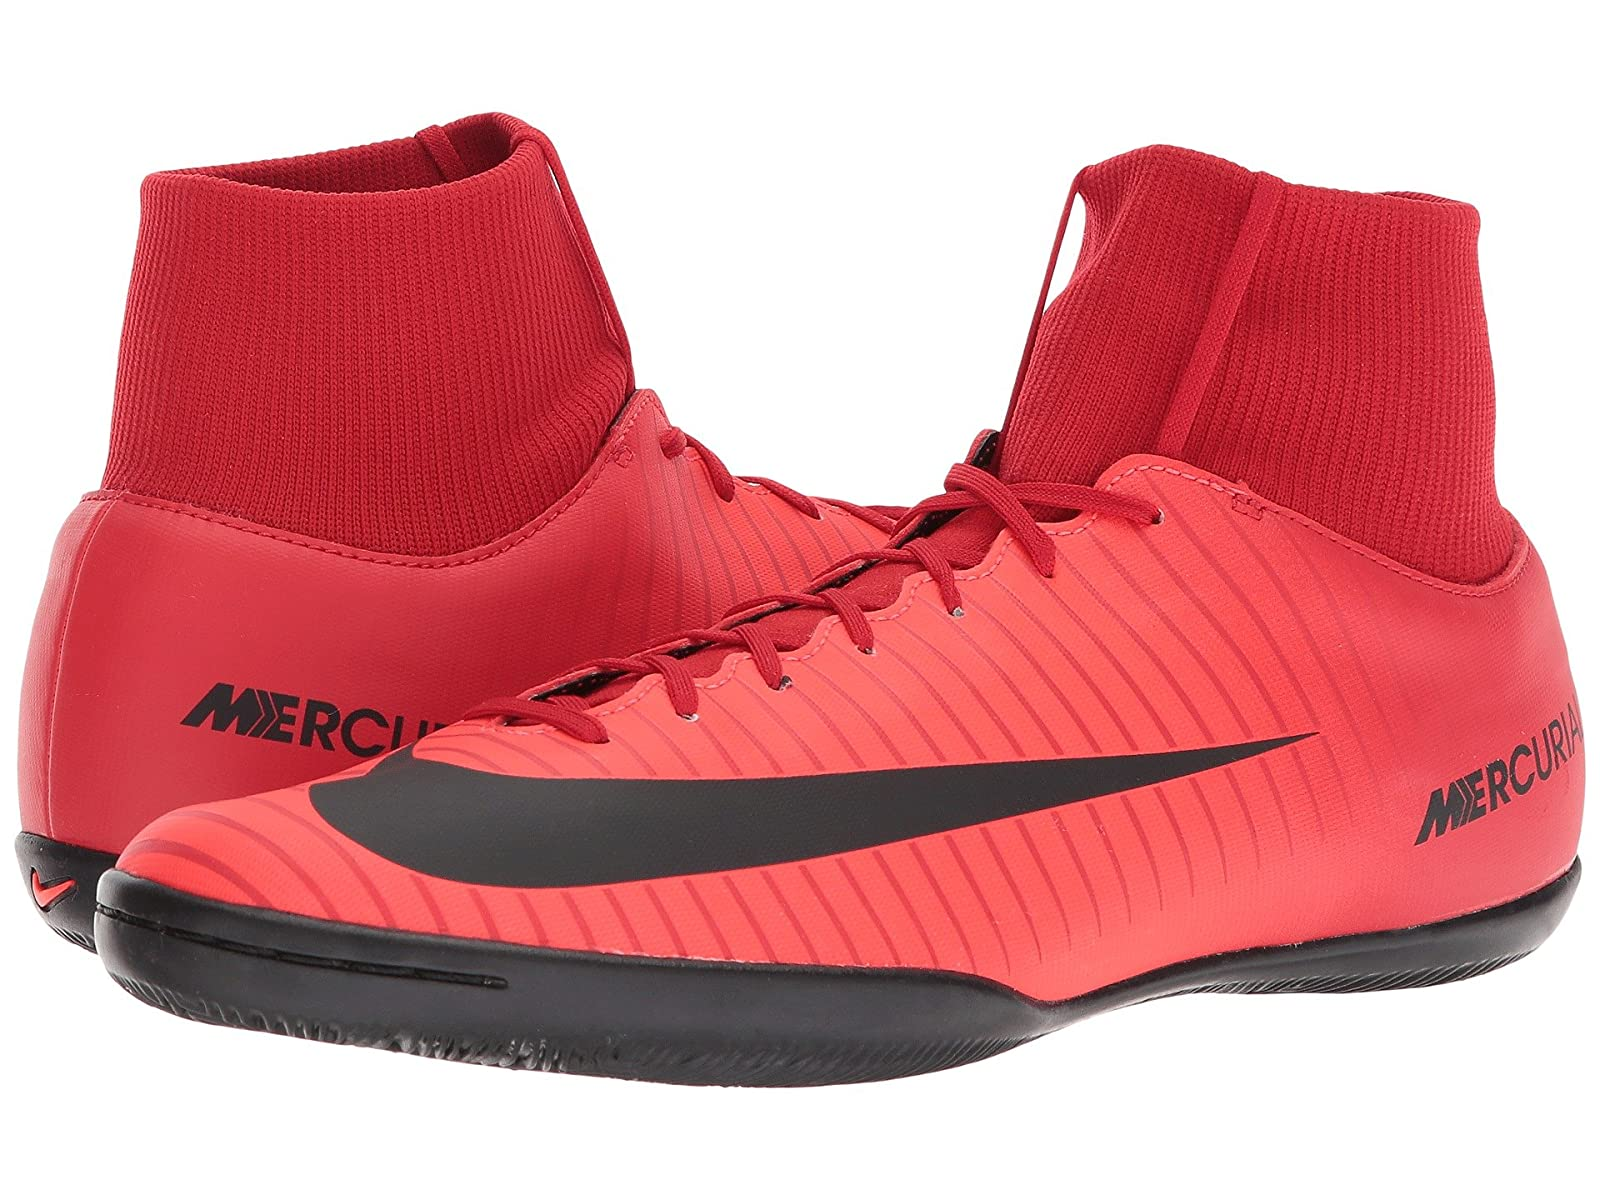 Nike MercurialX Victory VI Dynamic Fit ICCheap and distinctive eye-catching shoes